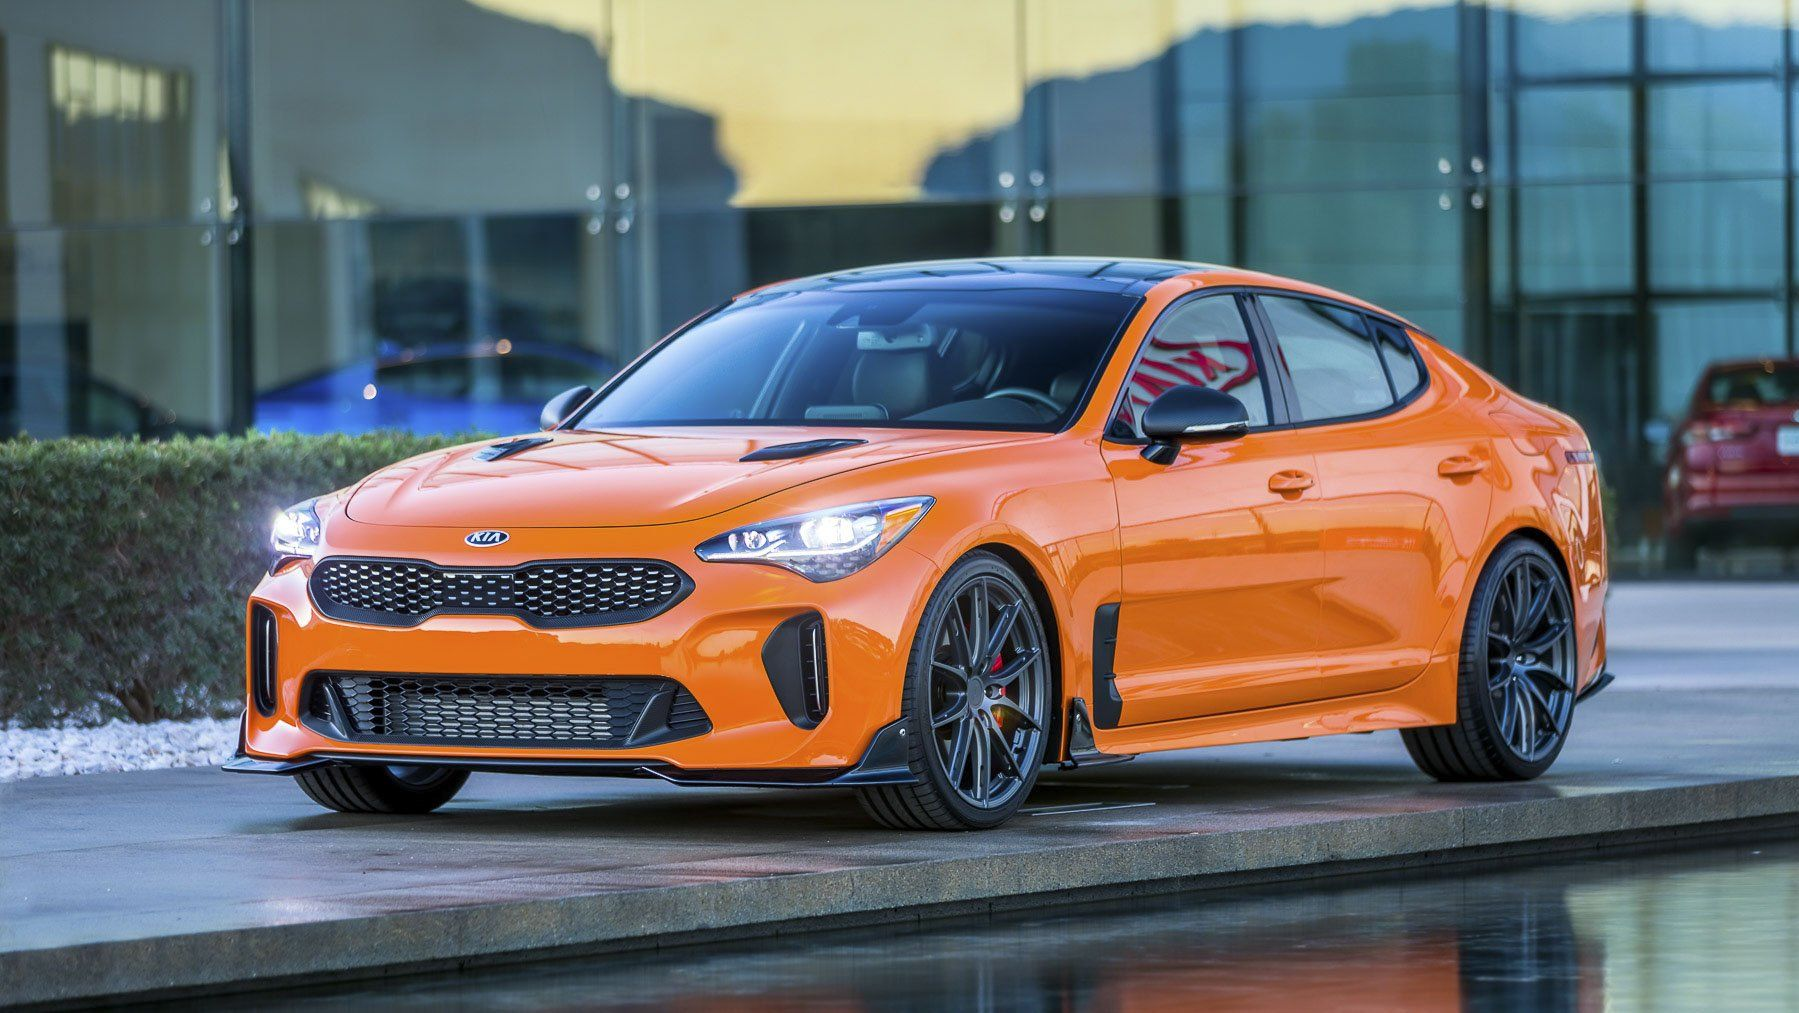 Check Out The Long Term Review On The 2018 Stinger Gt And See Why This Vehicle Is The Best Of The Best Kia Stinger Kia Kia 2017